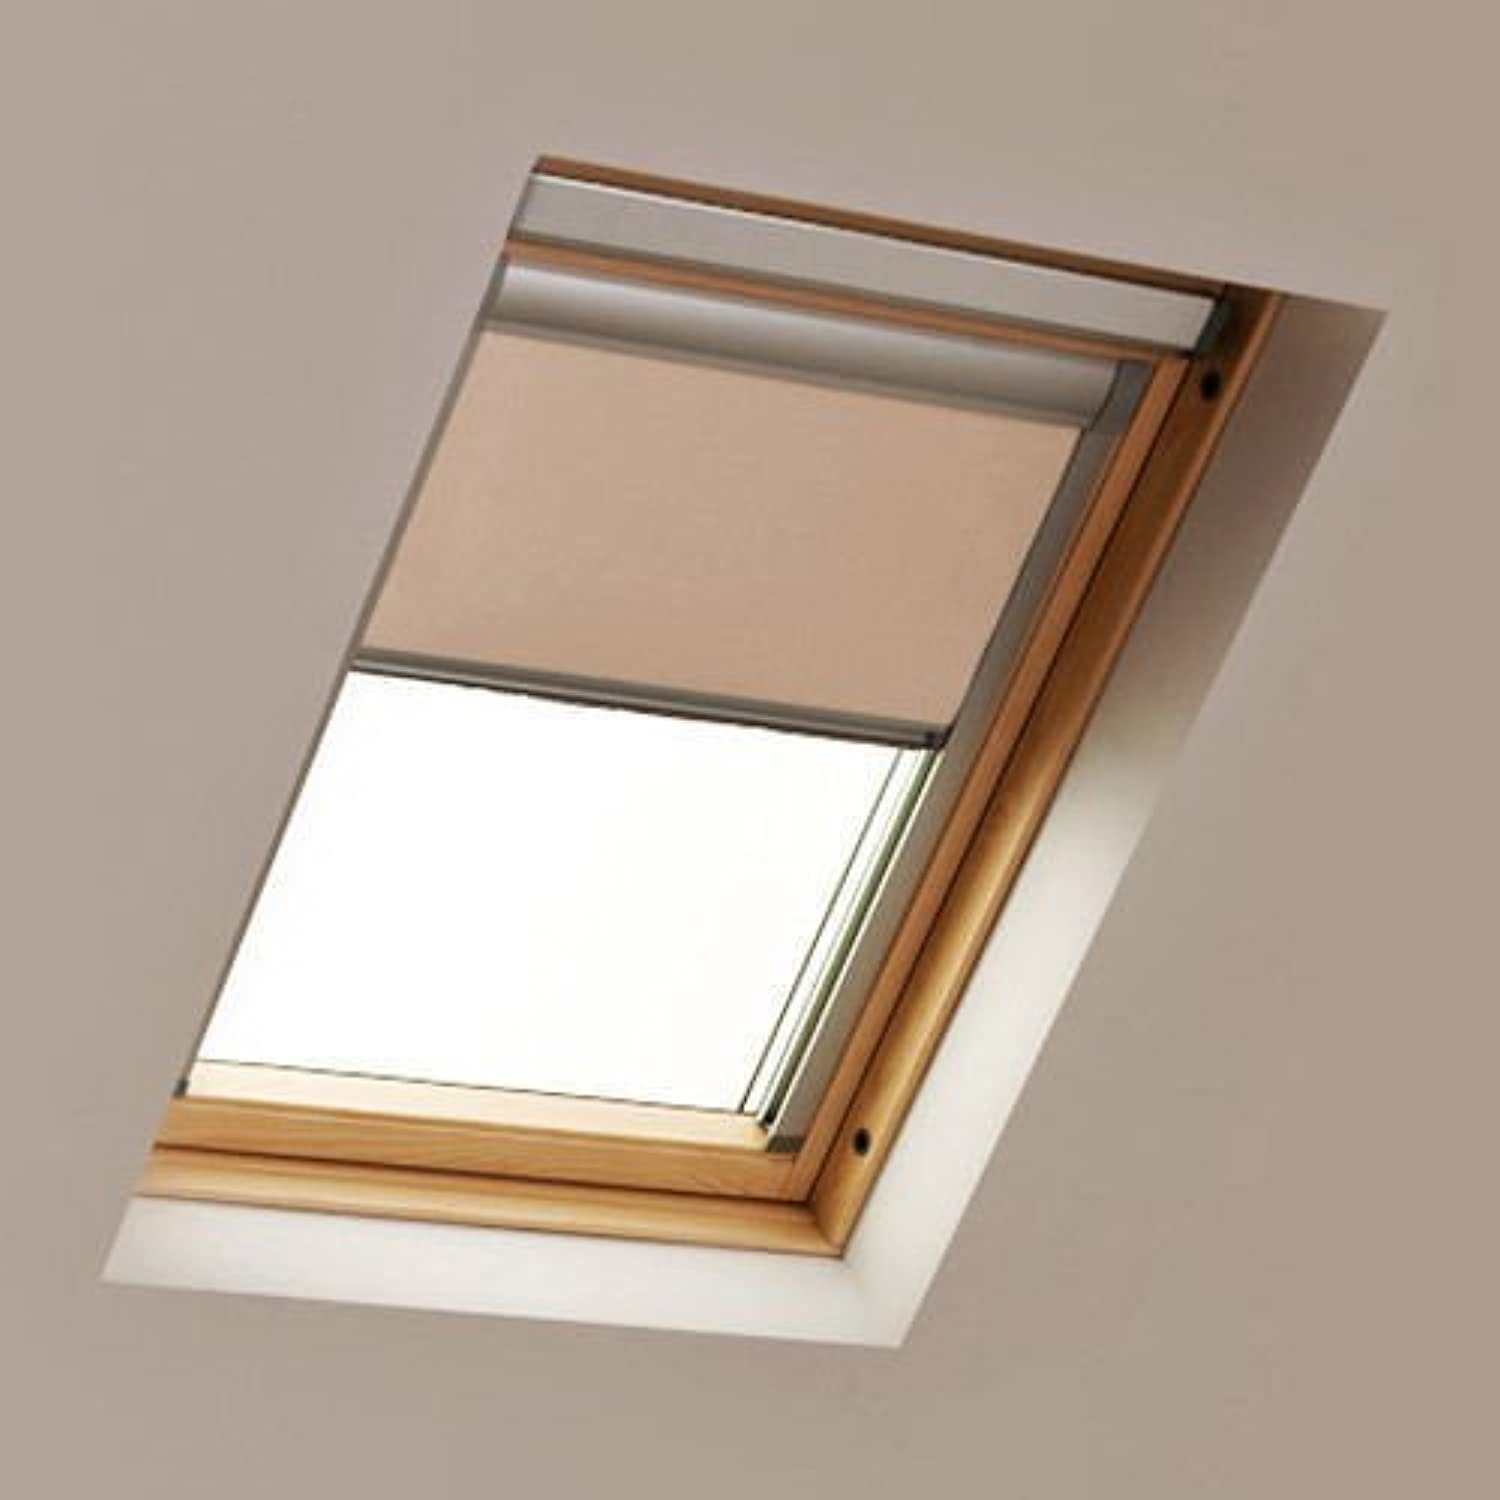 Blackout Roller Roof Blinds For Ggl 206 Velux Windows